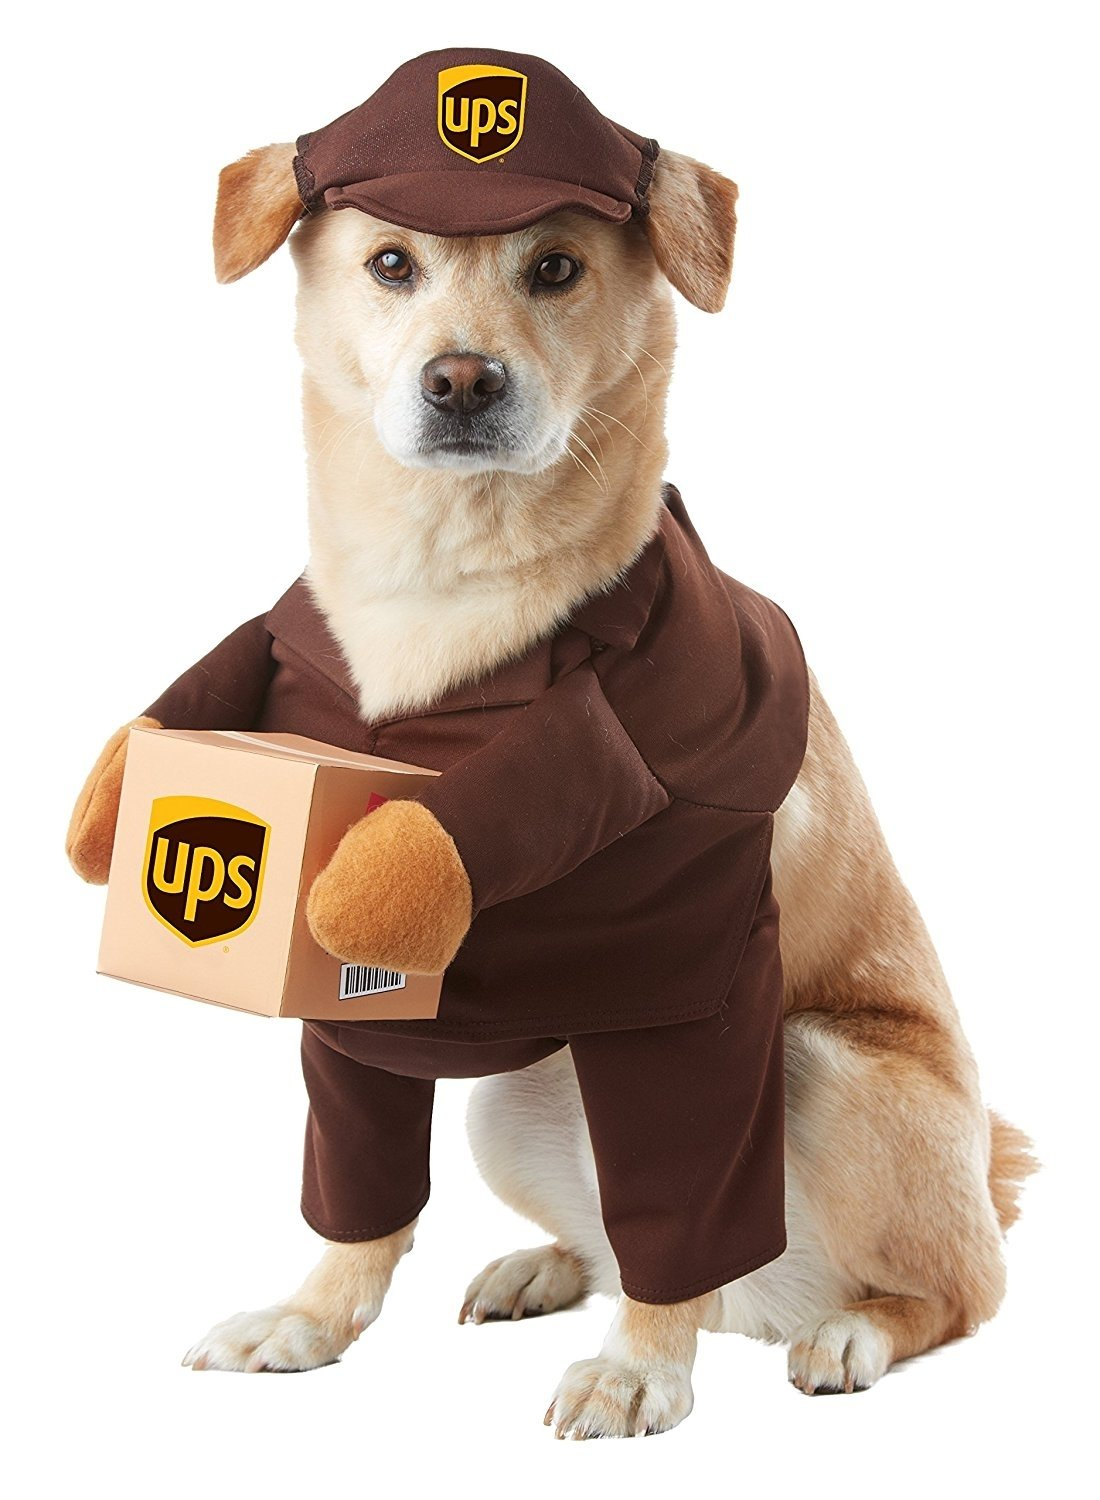 10 Stylish Halloween Costumes For Dogs Ideas california costumes ups pal pet halloween costume click image for 1 2020